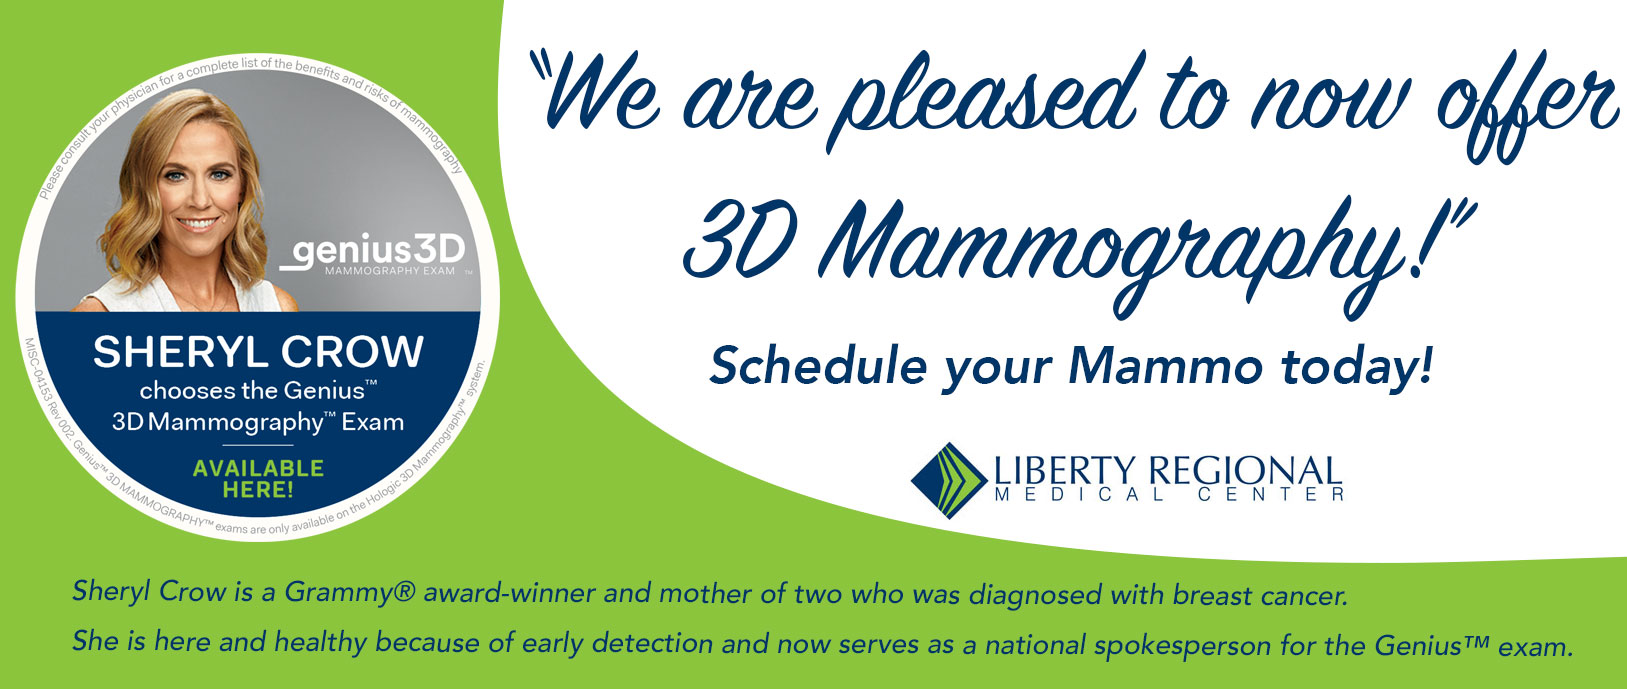 We are pleased to now offer 3D Mammography! Schedule your Mammo Today.